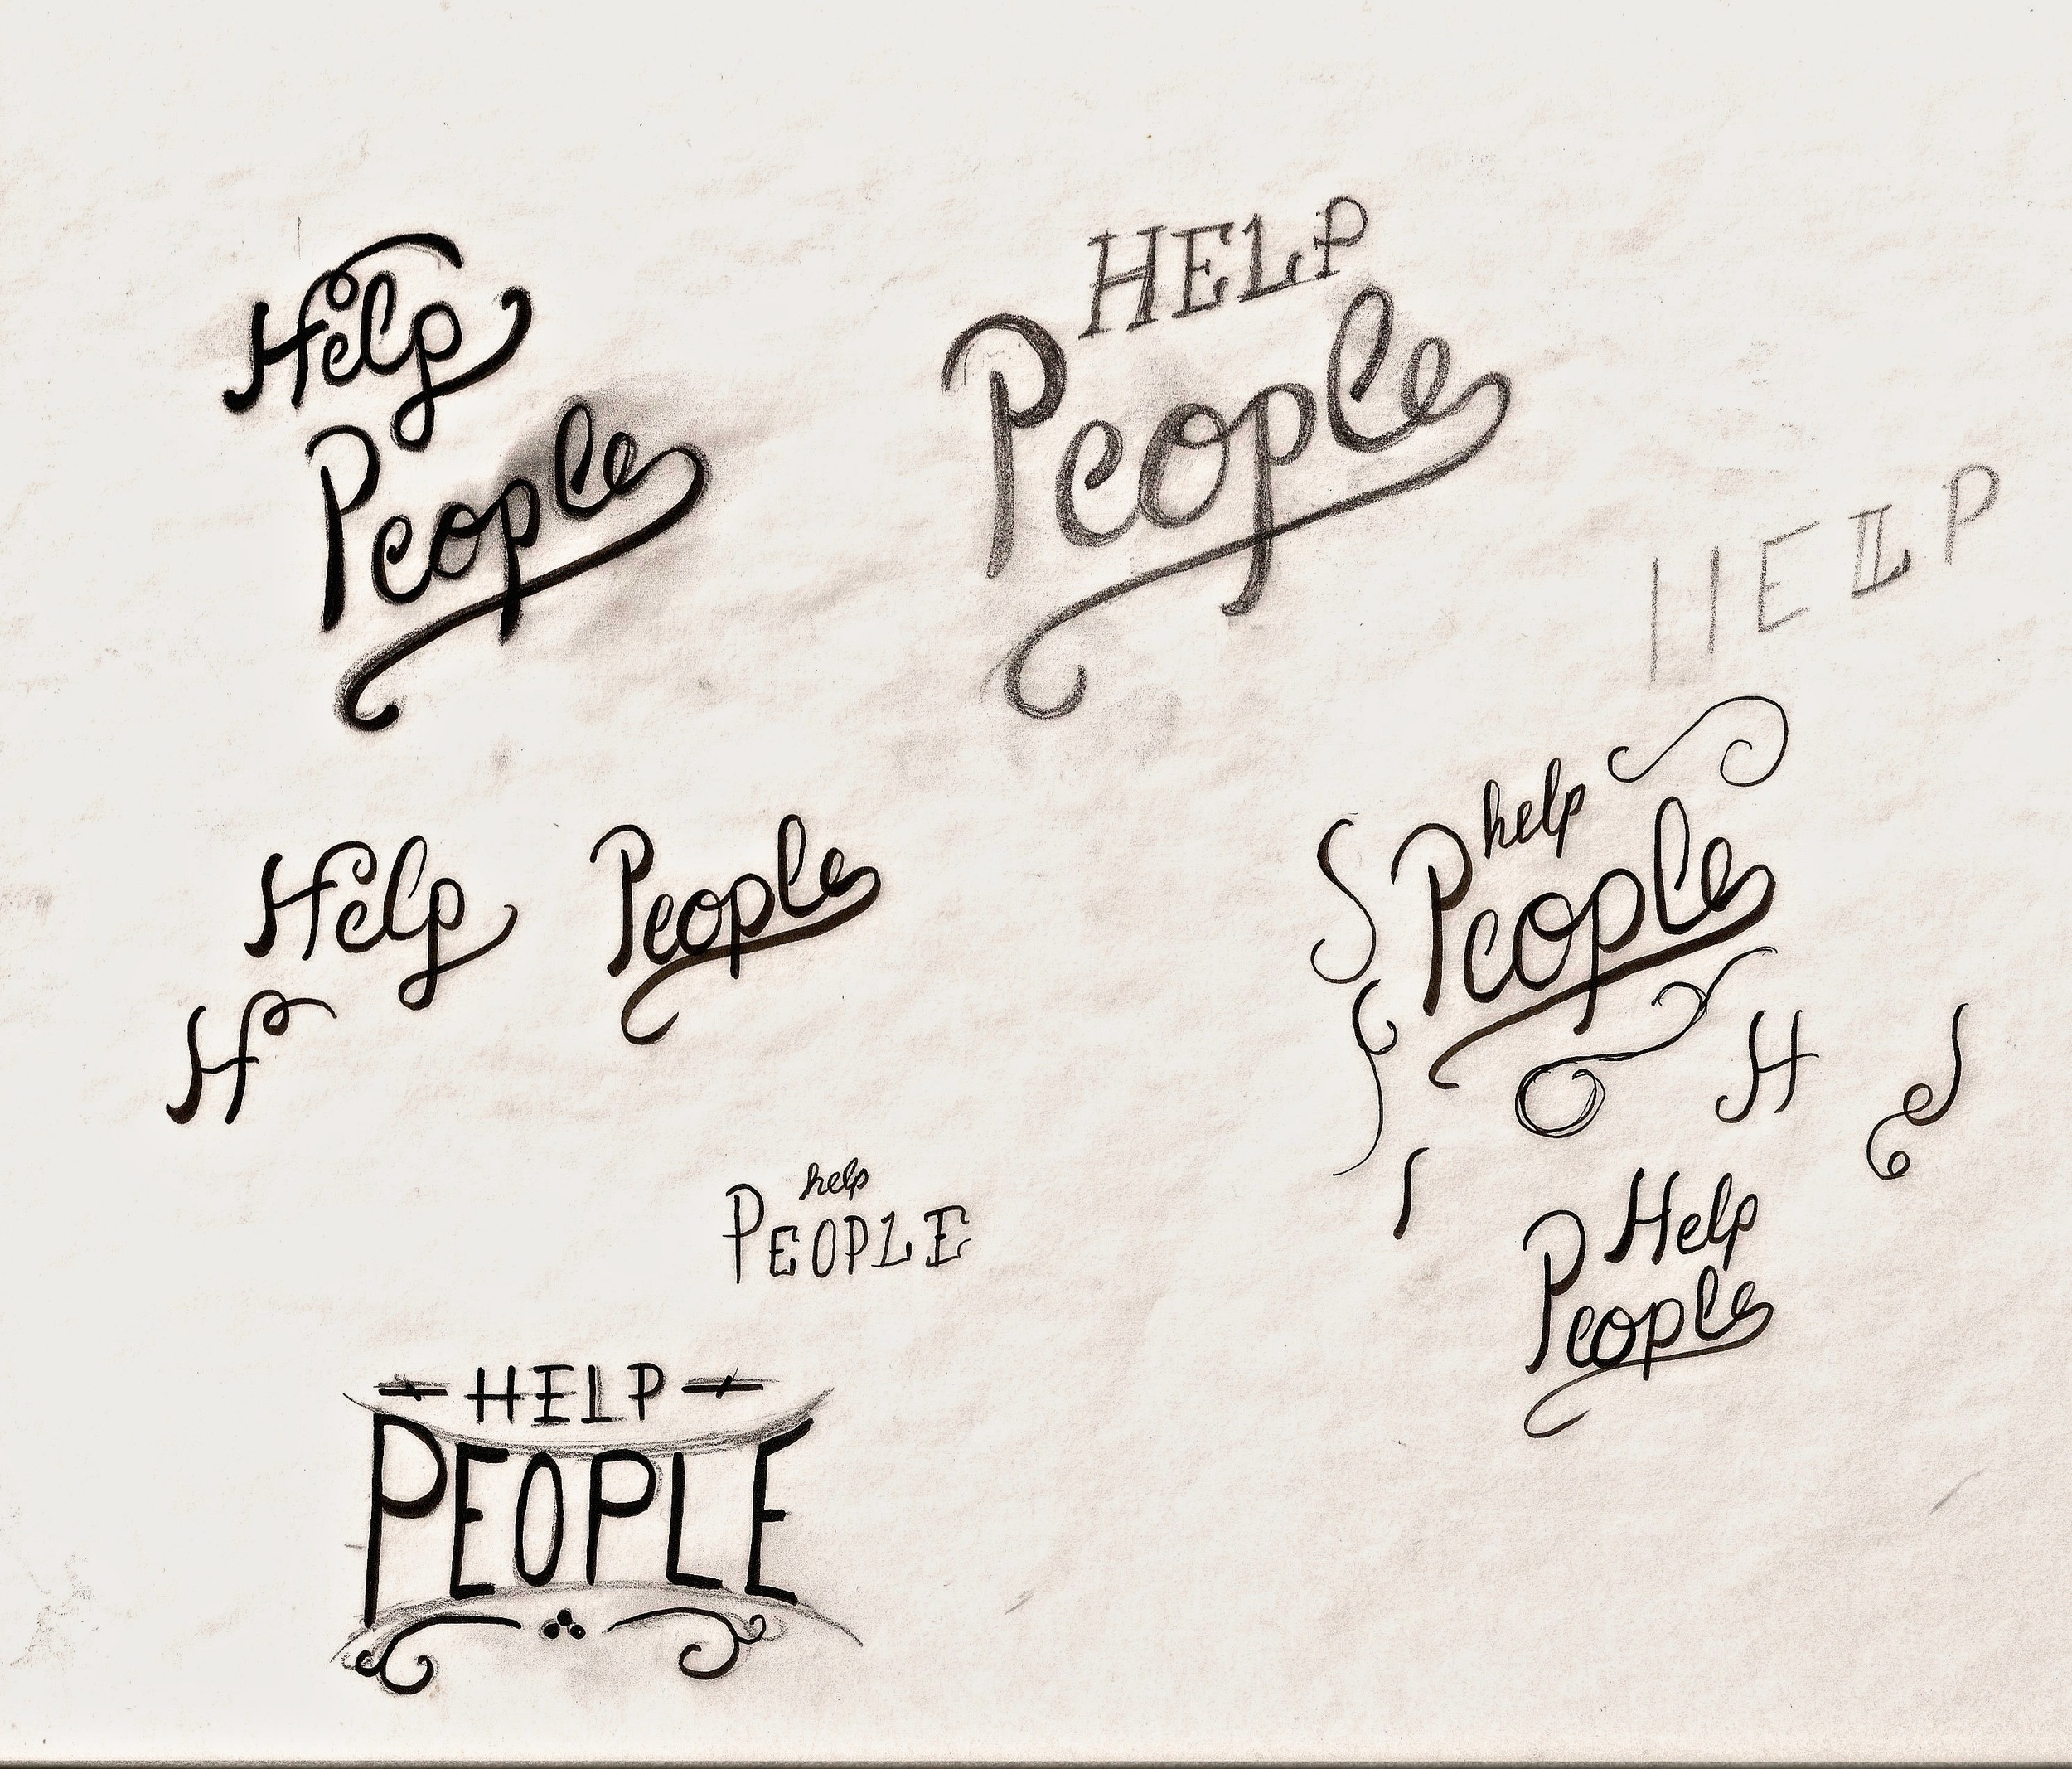 """A recent journal post about why TheWorley Co exists was called """"Help People"""" and this was a bit of the concepting. I'll crank out about 8-15 initial designs to see how the feel is and what I'm hoping to communicate before going in a direction."""